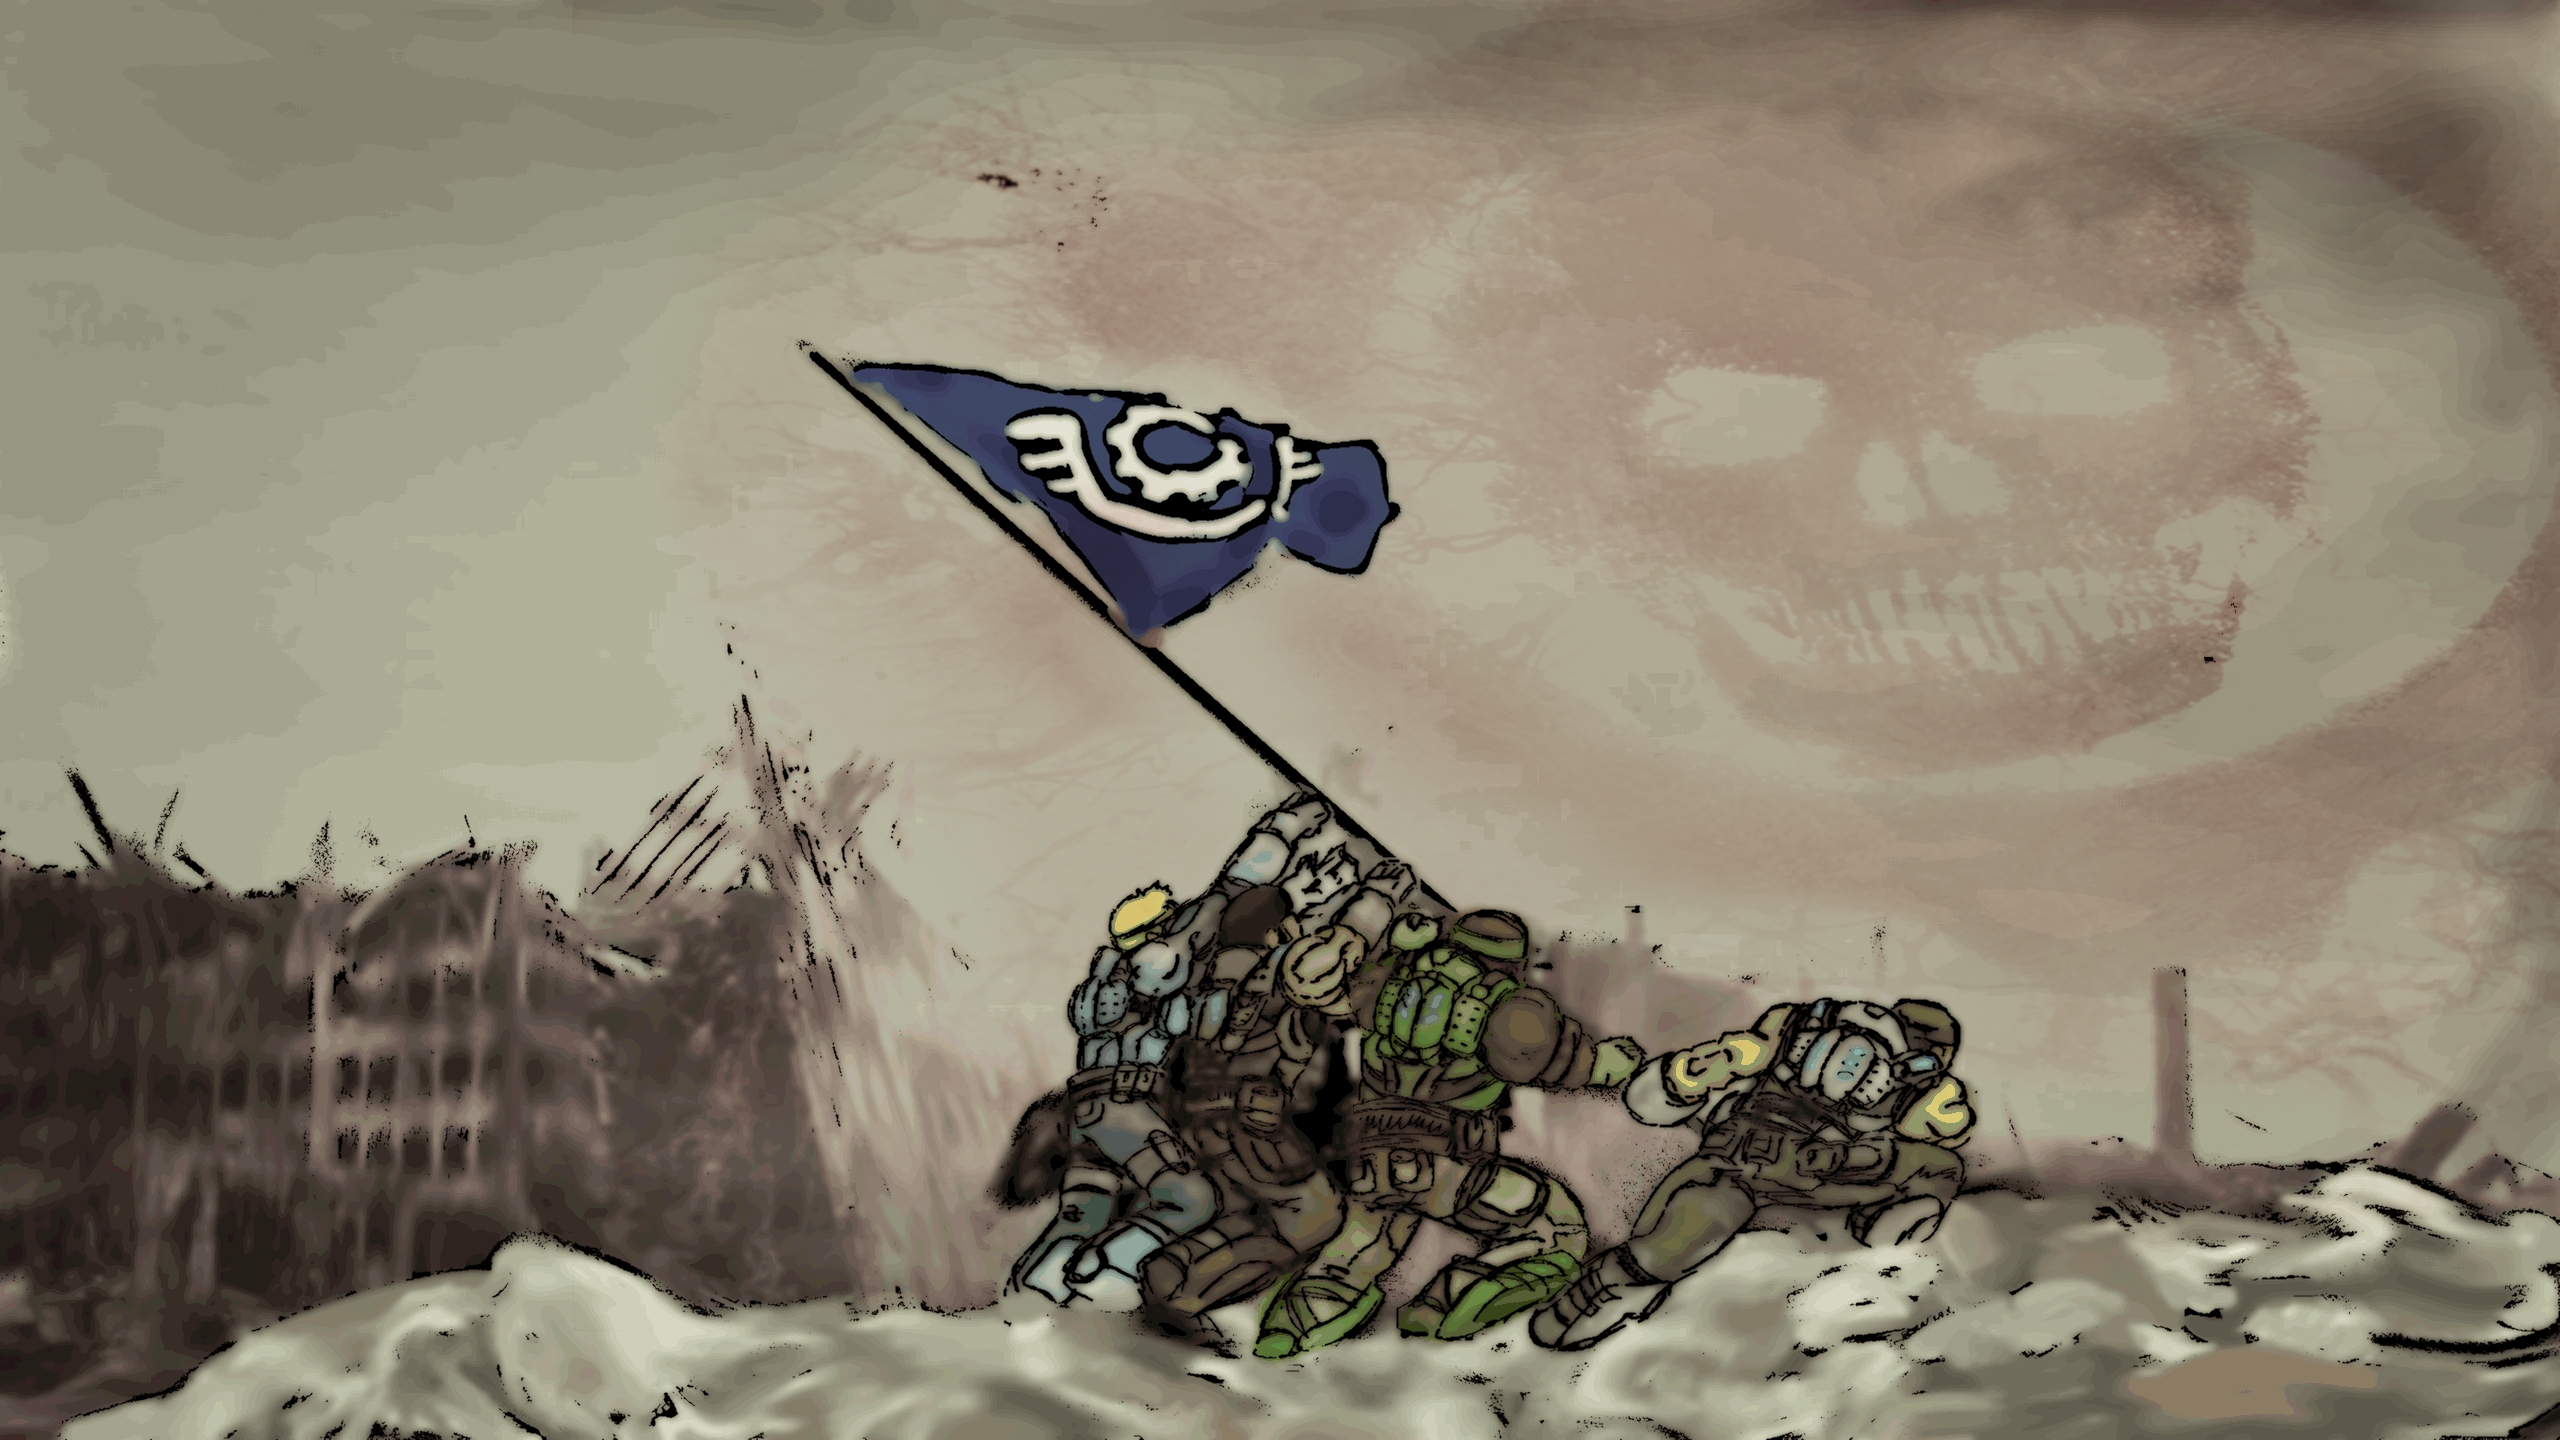 Gears Tribute by MaQuintus